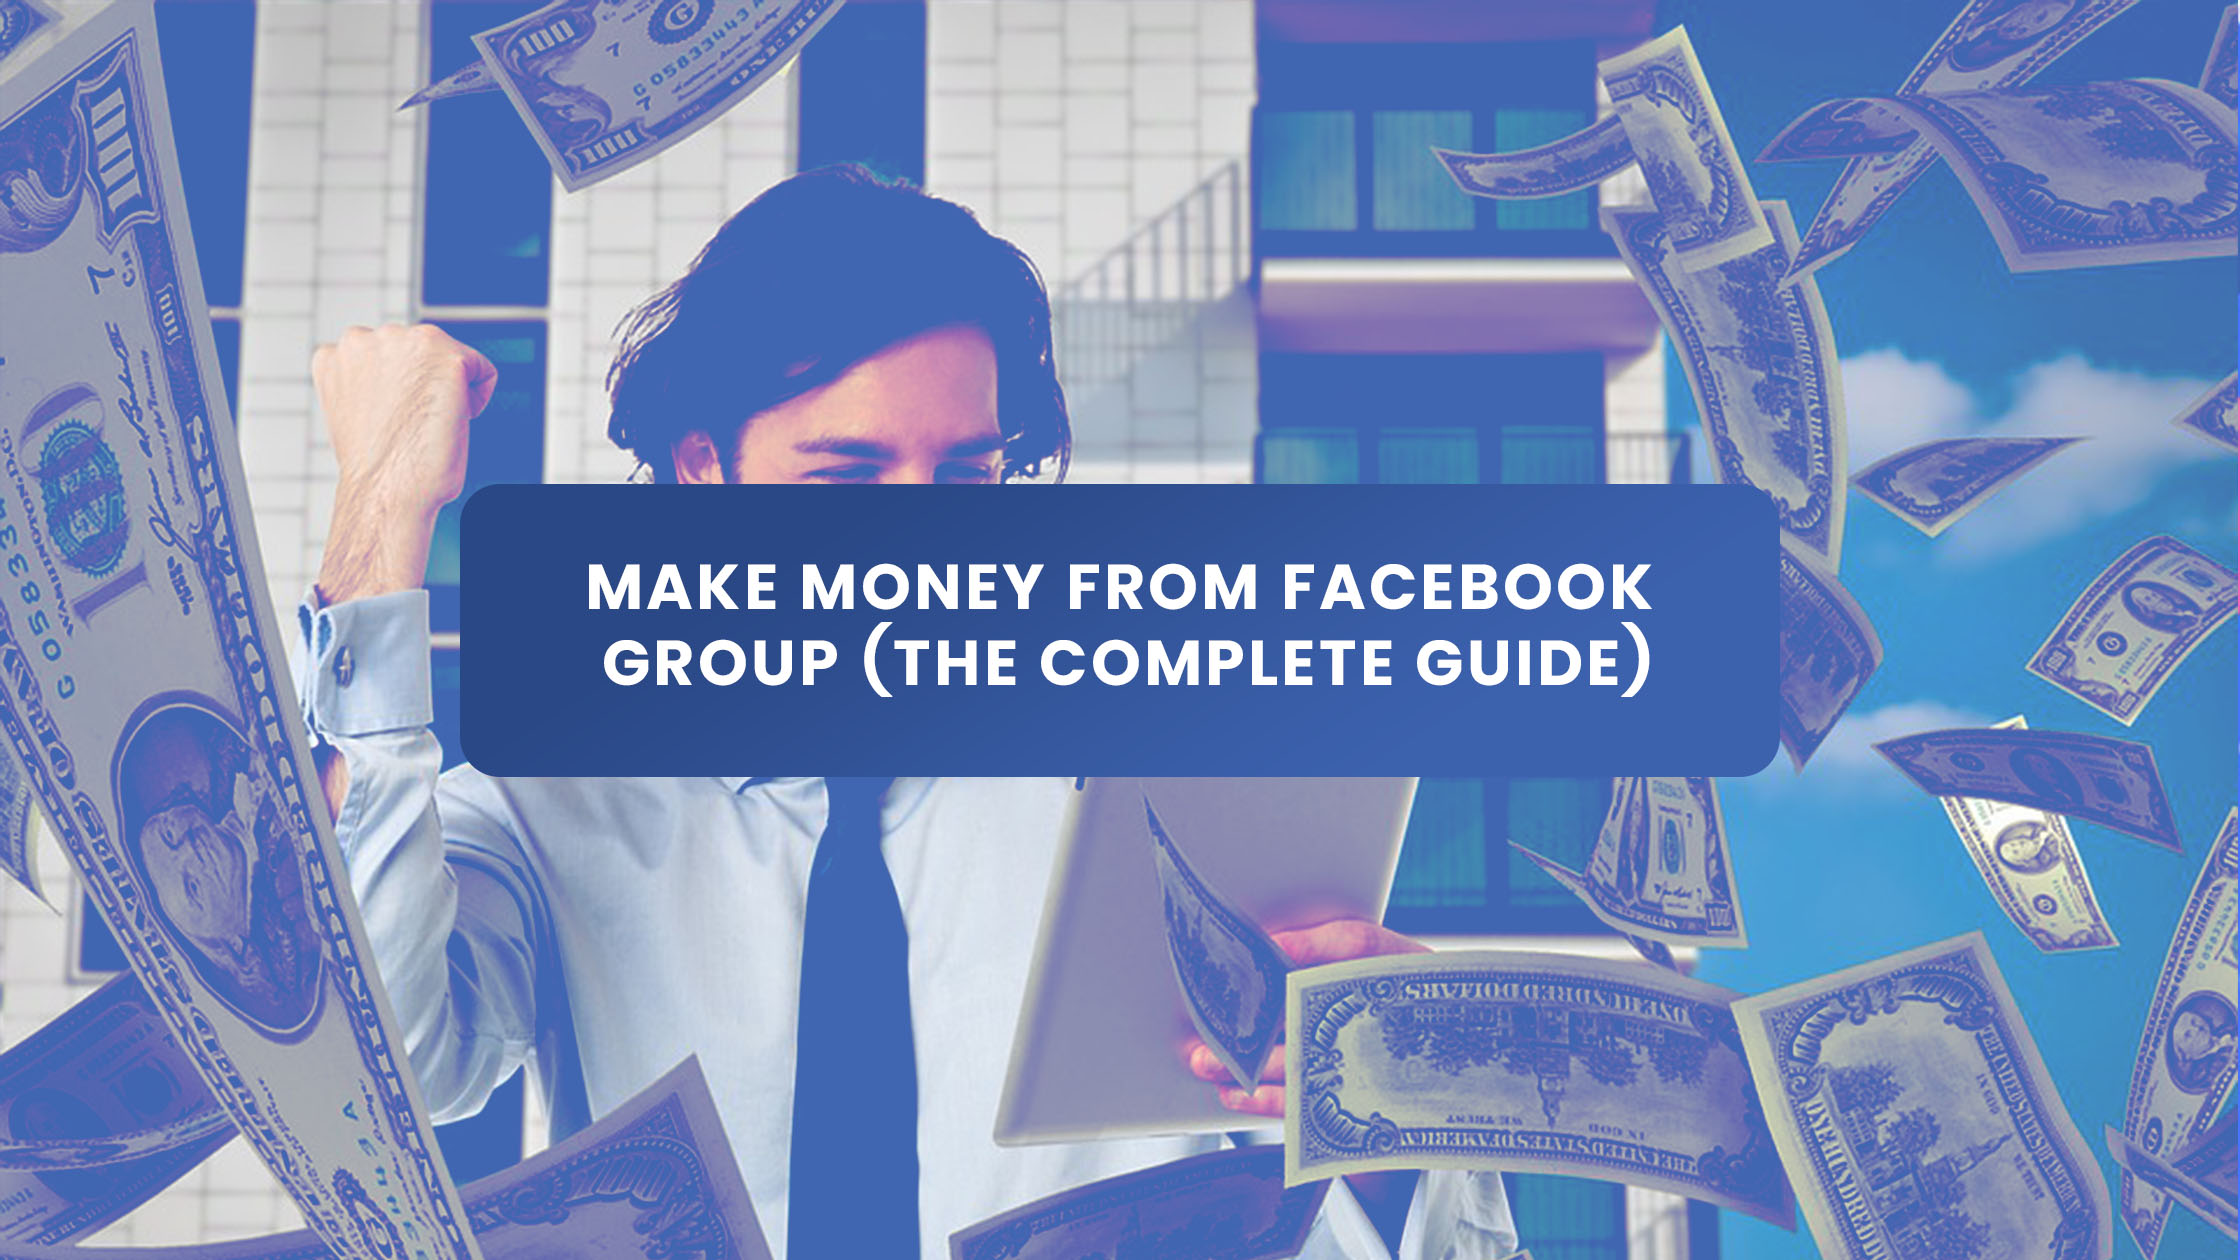 Make Money from Facebook Group